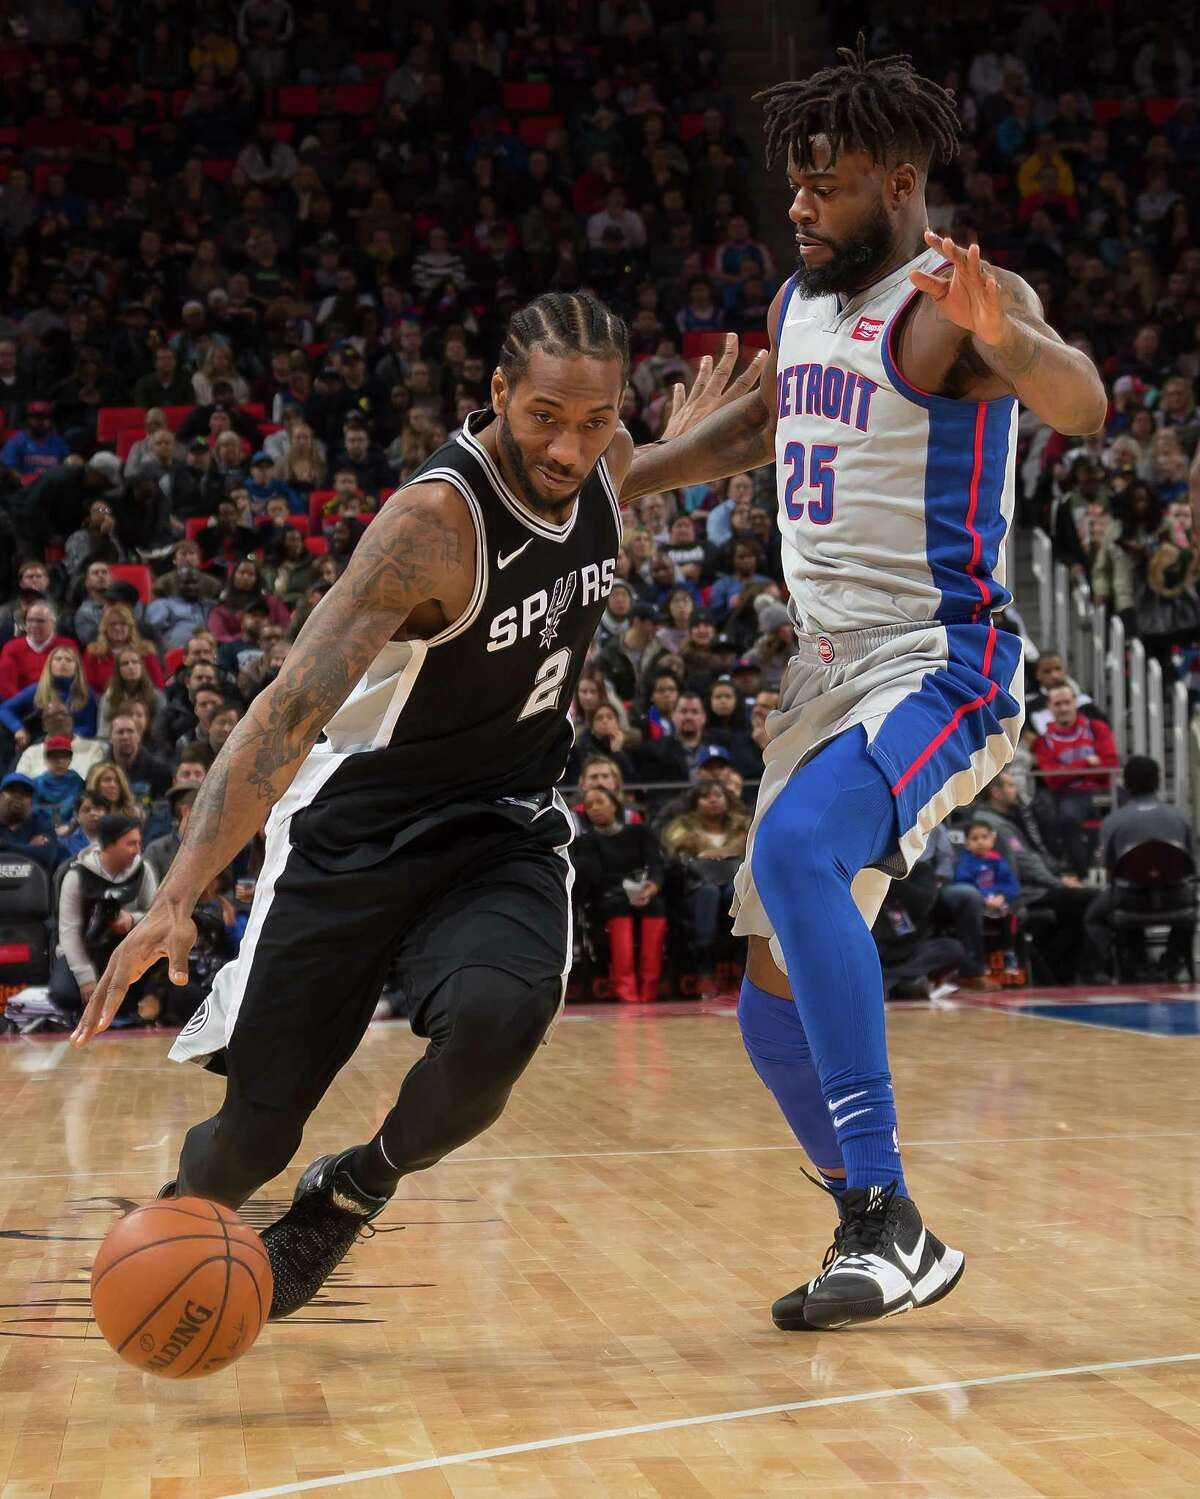 DETROIT, MI - DECEMBER 30: Reggie Bullock #25 of the Detroit Pistons defends against Kawhi Leonard #2 of the San Antonio Spurs in the first half of an NBA game at Little Caesars Arena on December 30, 2017 in Detroit, Michigan. NOTE TO USER: User expressly acknowledges and agrees that, by downloading and or using this photograph, User is consenting to the terms and conditions of the Getty Images License Agreement.